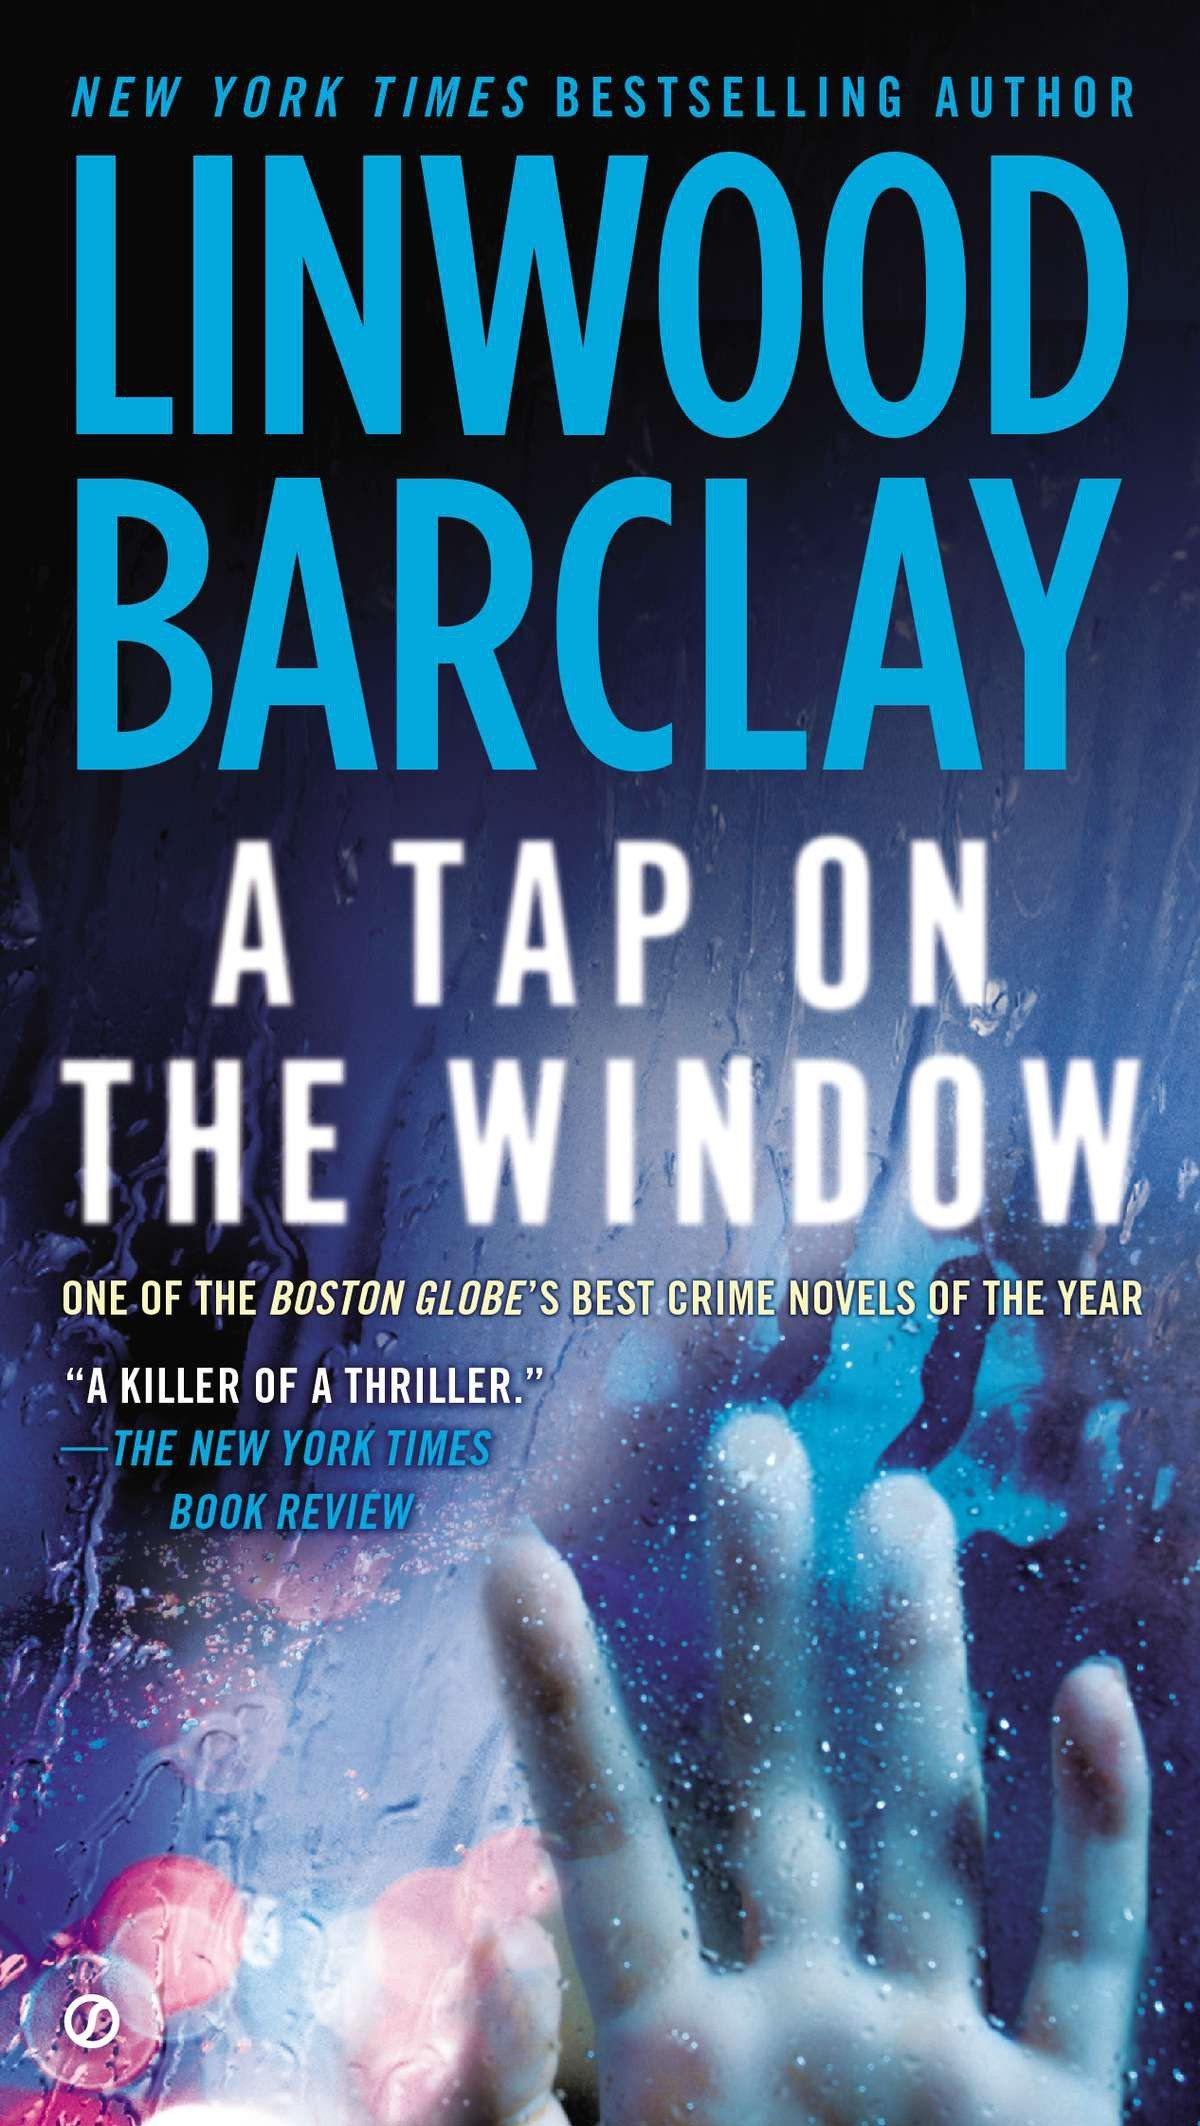 Amazon.com: A Tap on the Window (9780451414199): Linwood Barclay: Books